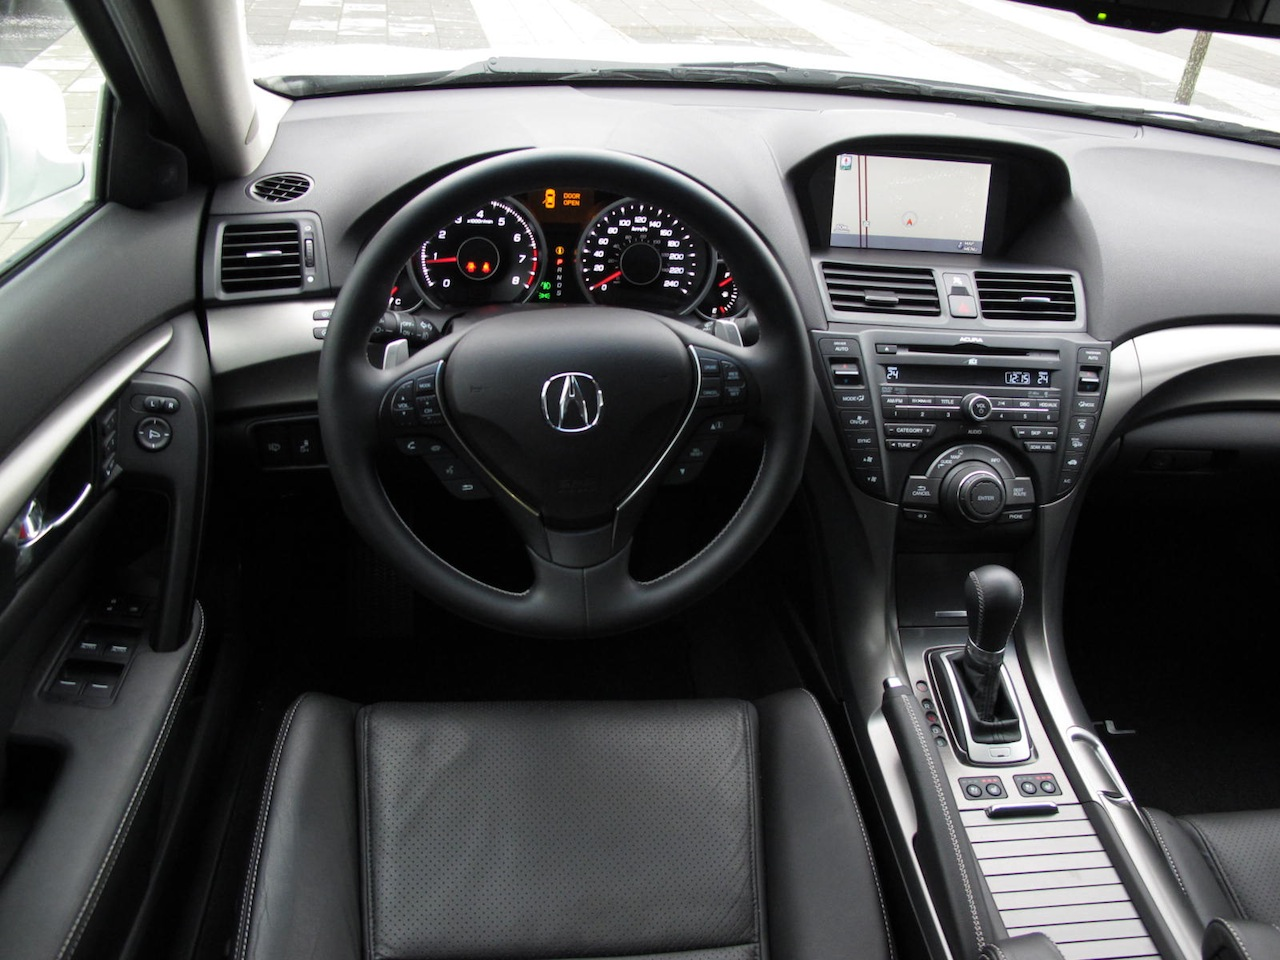 2012 Acura Tl Sh Awd Review Cars Photos Test Drives